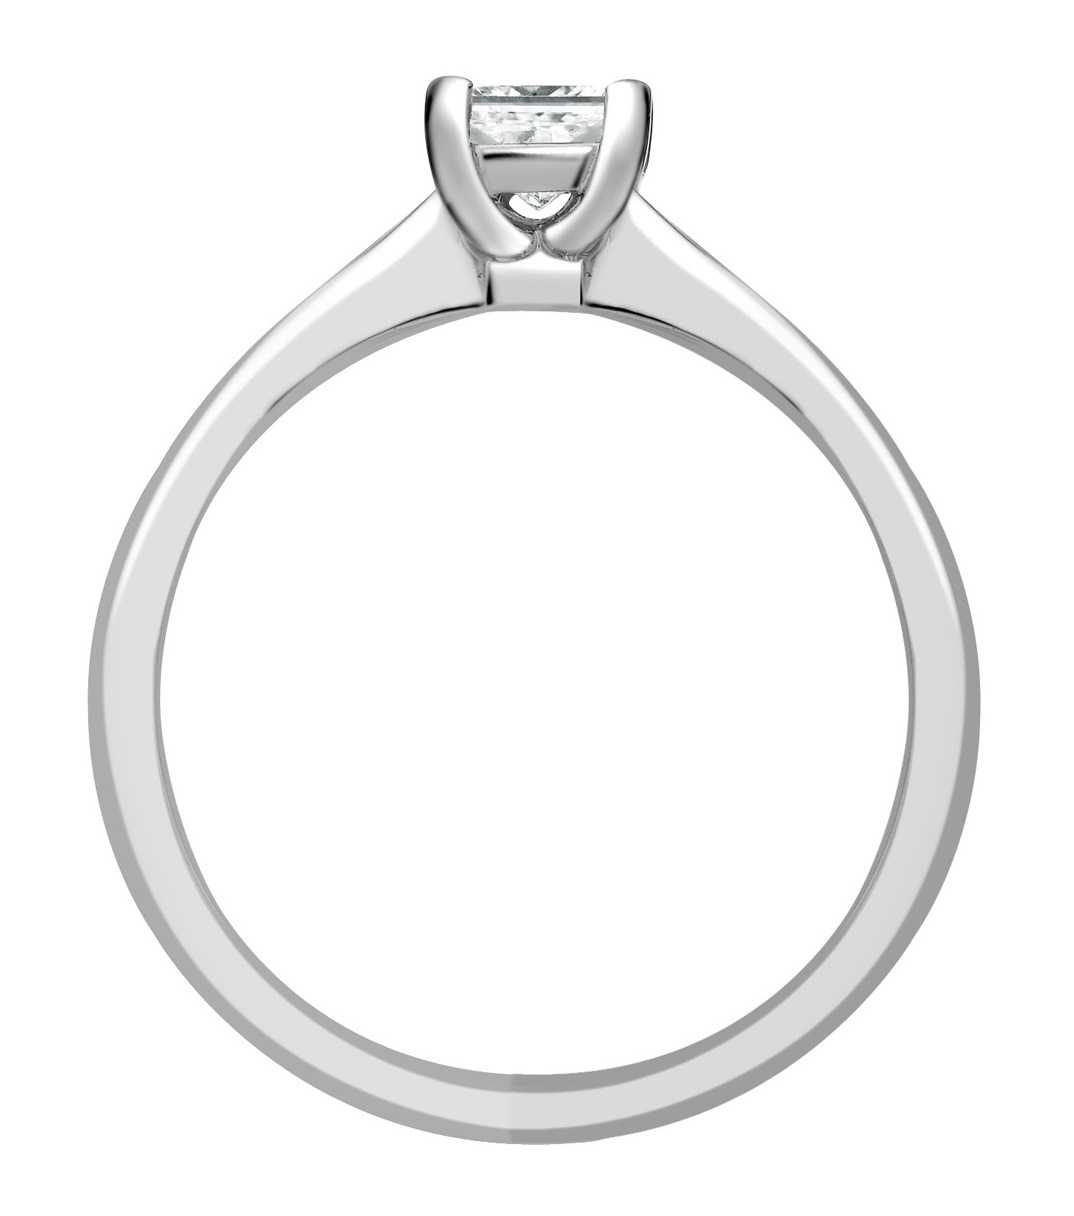 Princess Cut Four Claw White Gold Engagement Ring GRC502 Image 2